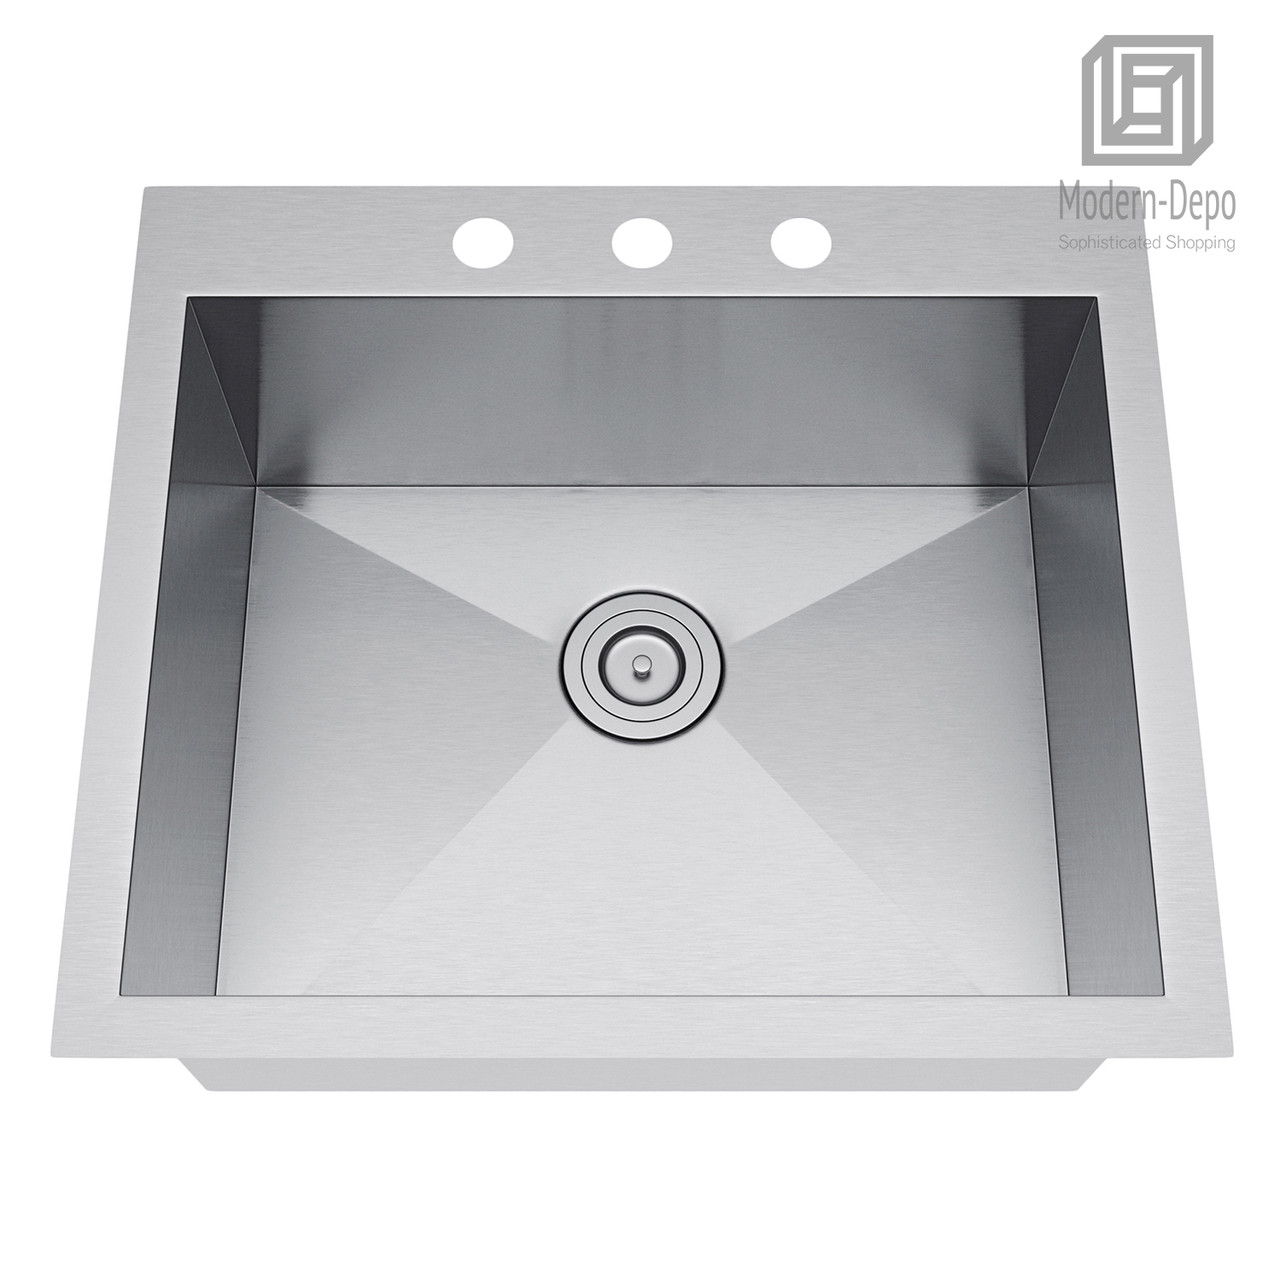 Exclusive heritage 25 x 22 single bowl topmount stainless steel kitchen sink with strainer